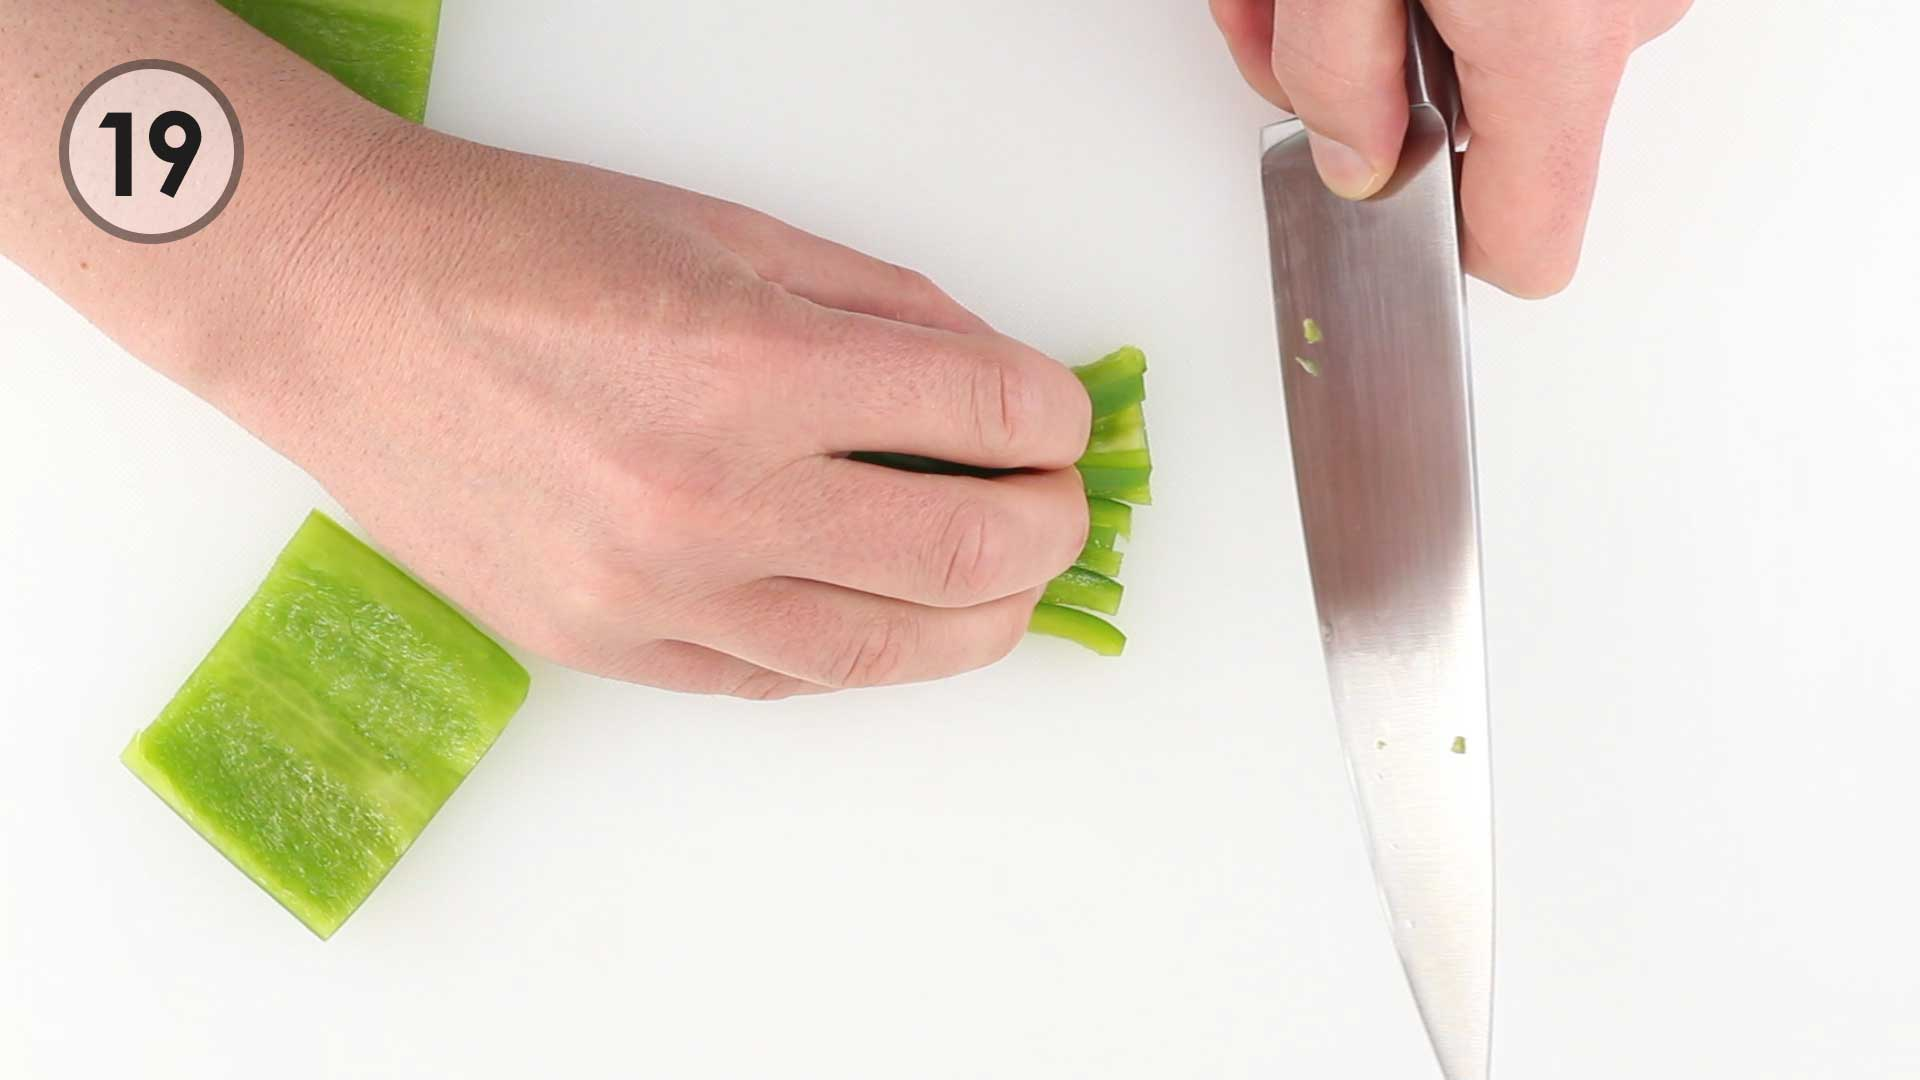 Step 19. Guide hand with fingers curled back over top of bell pepper julienne. Chef's knife being held with safe grip.